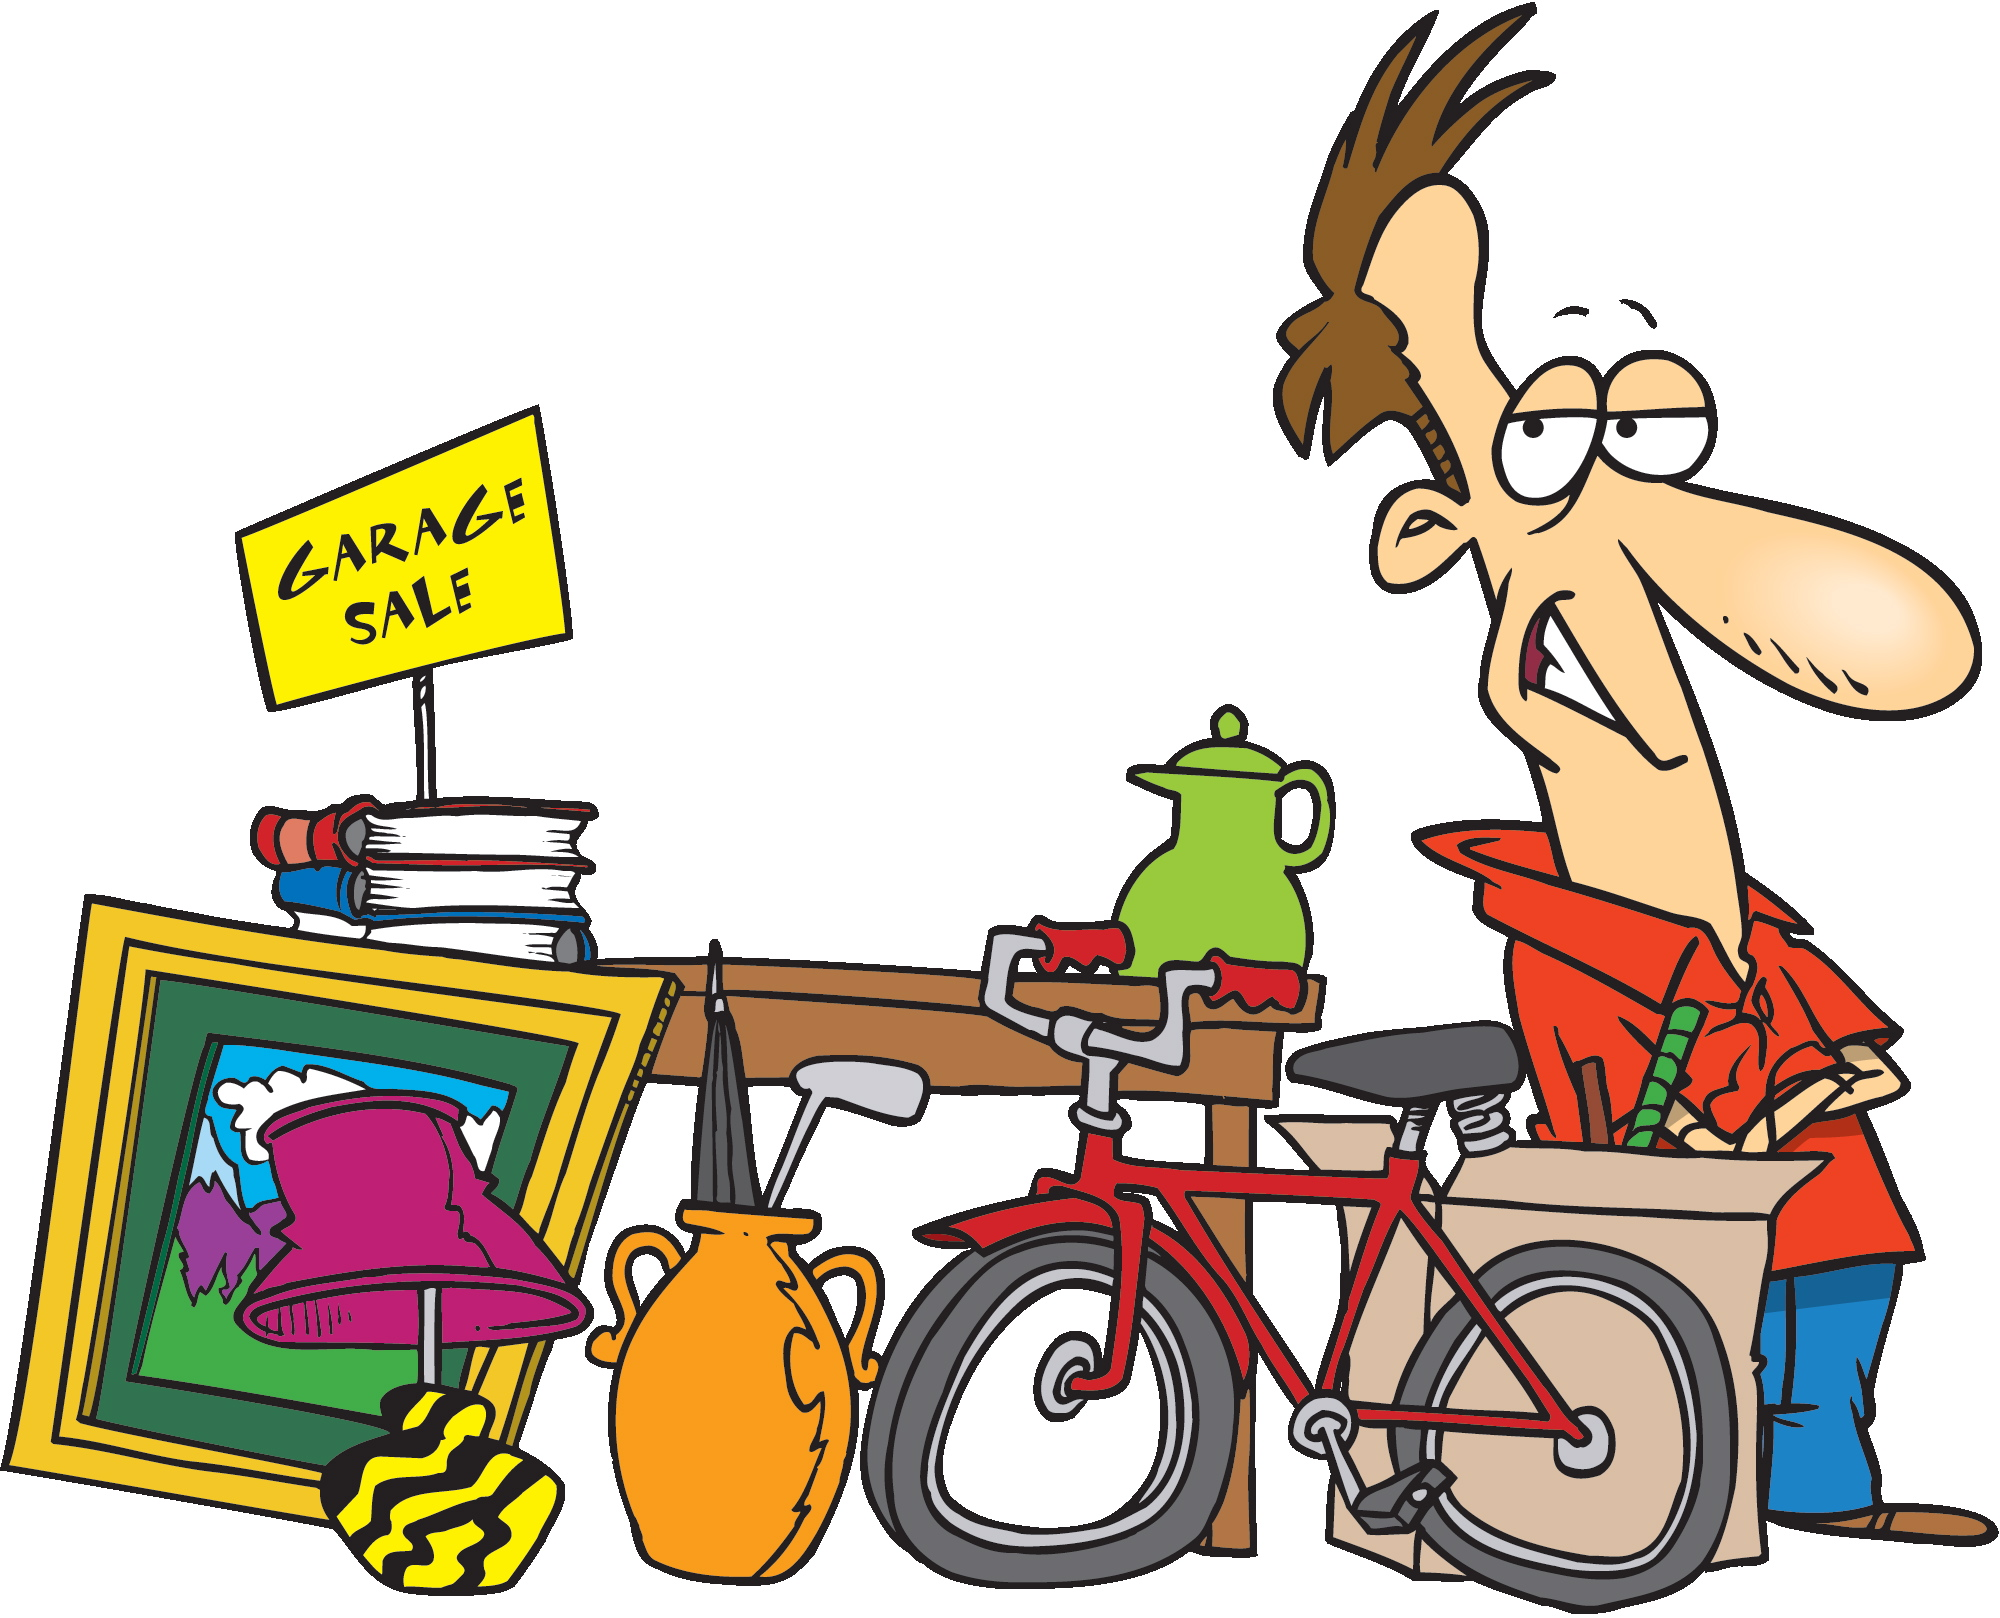 Table top sale clipart 9 » Clipart Station.